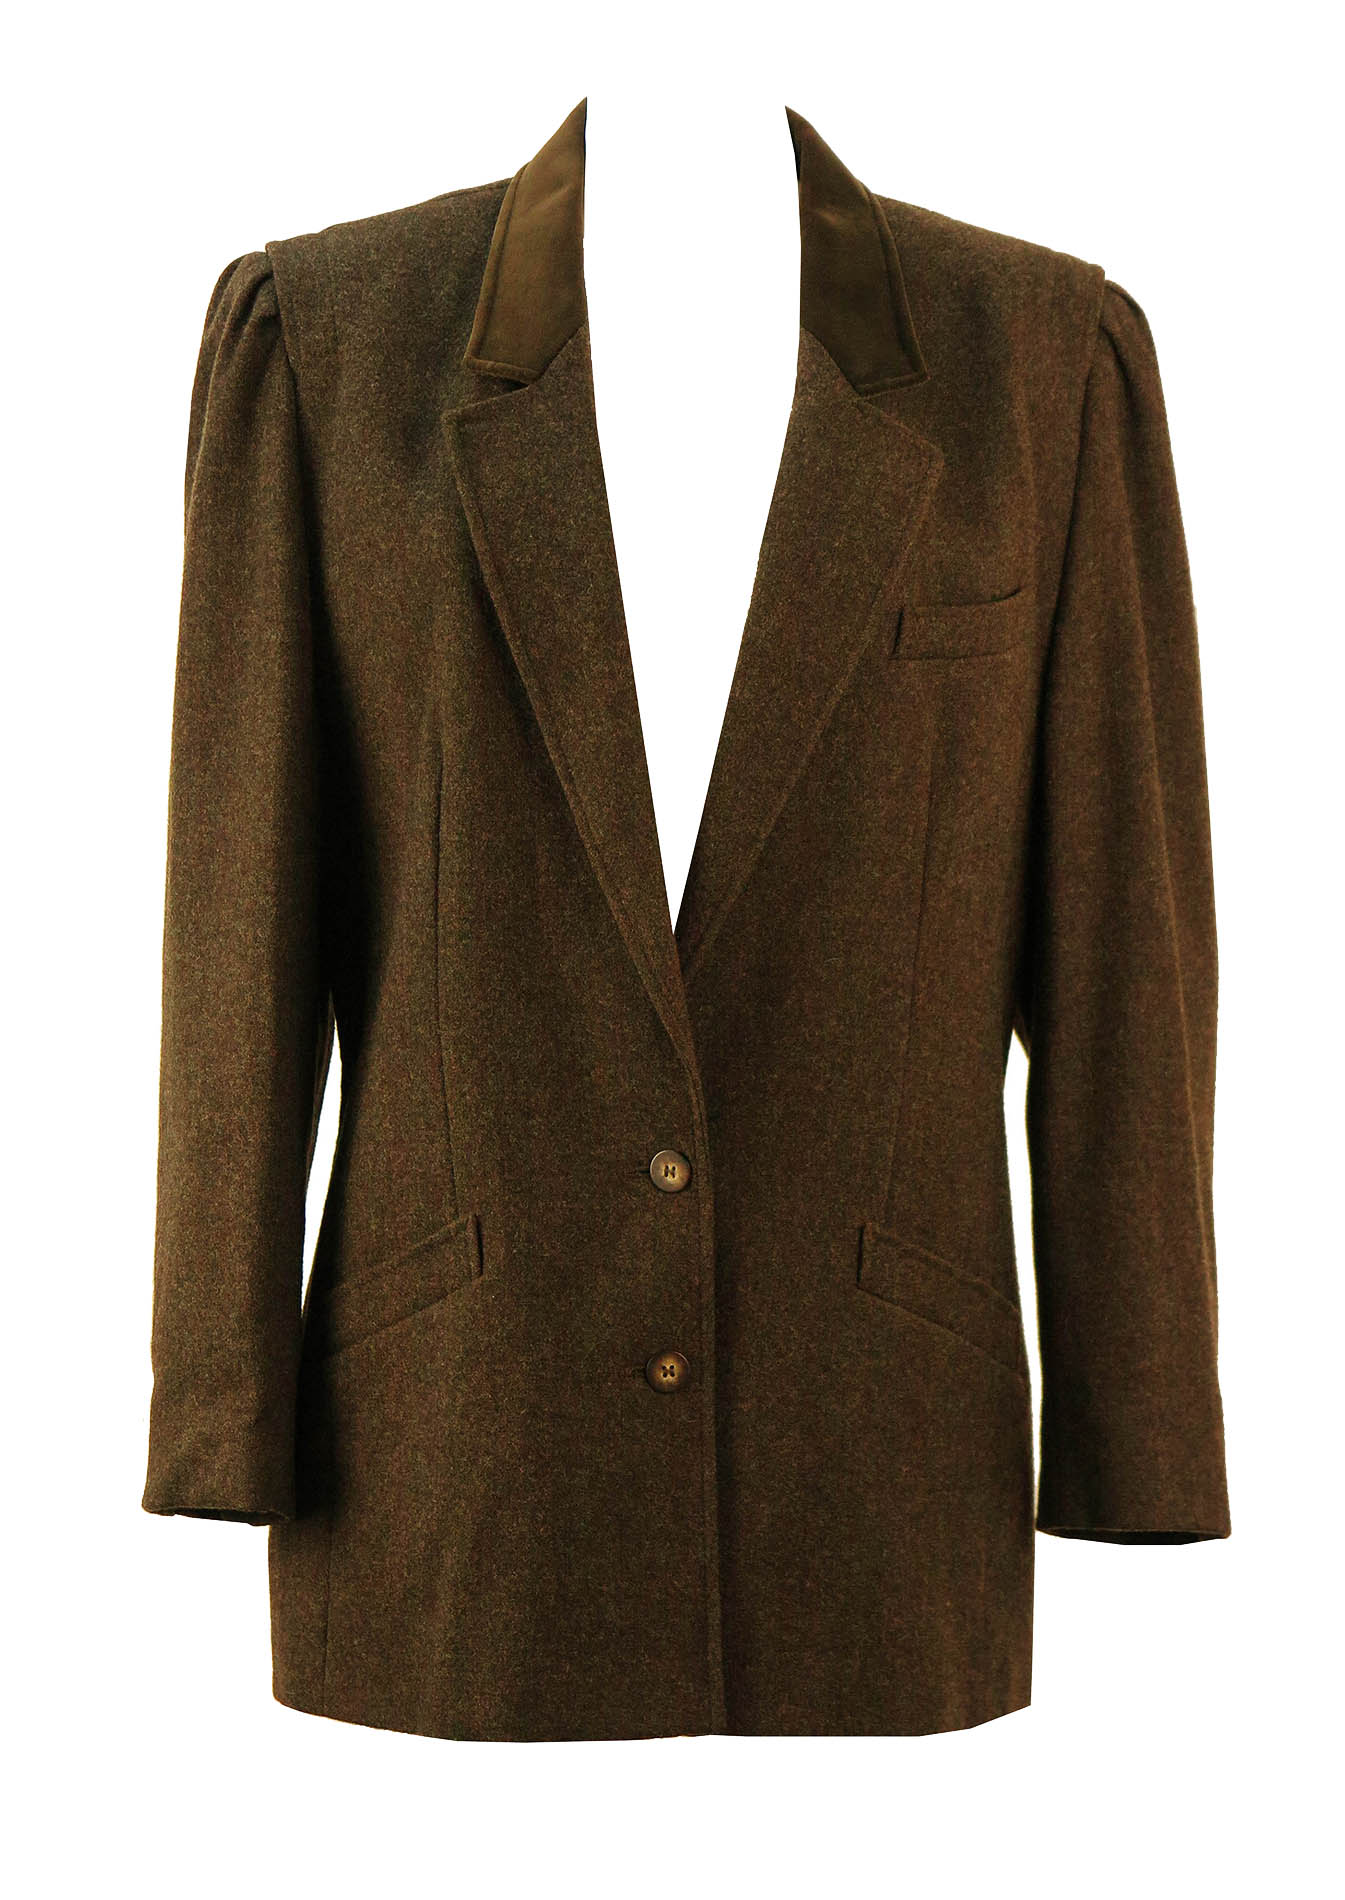 You searched for: brown wool jacket! Etsy is the home to thousands of handmade, vintage, and one-of-a-kind products and gifts related to your search. No matter what you're looking for or where you are in the world, our global marketplace of sellers can help you find unique and affordable options. Let's get started!